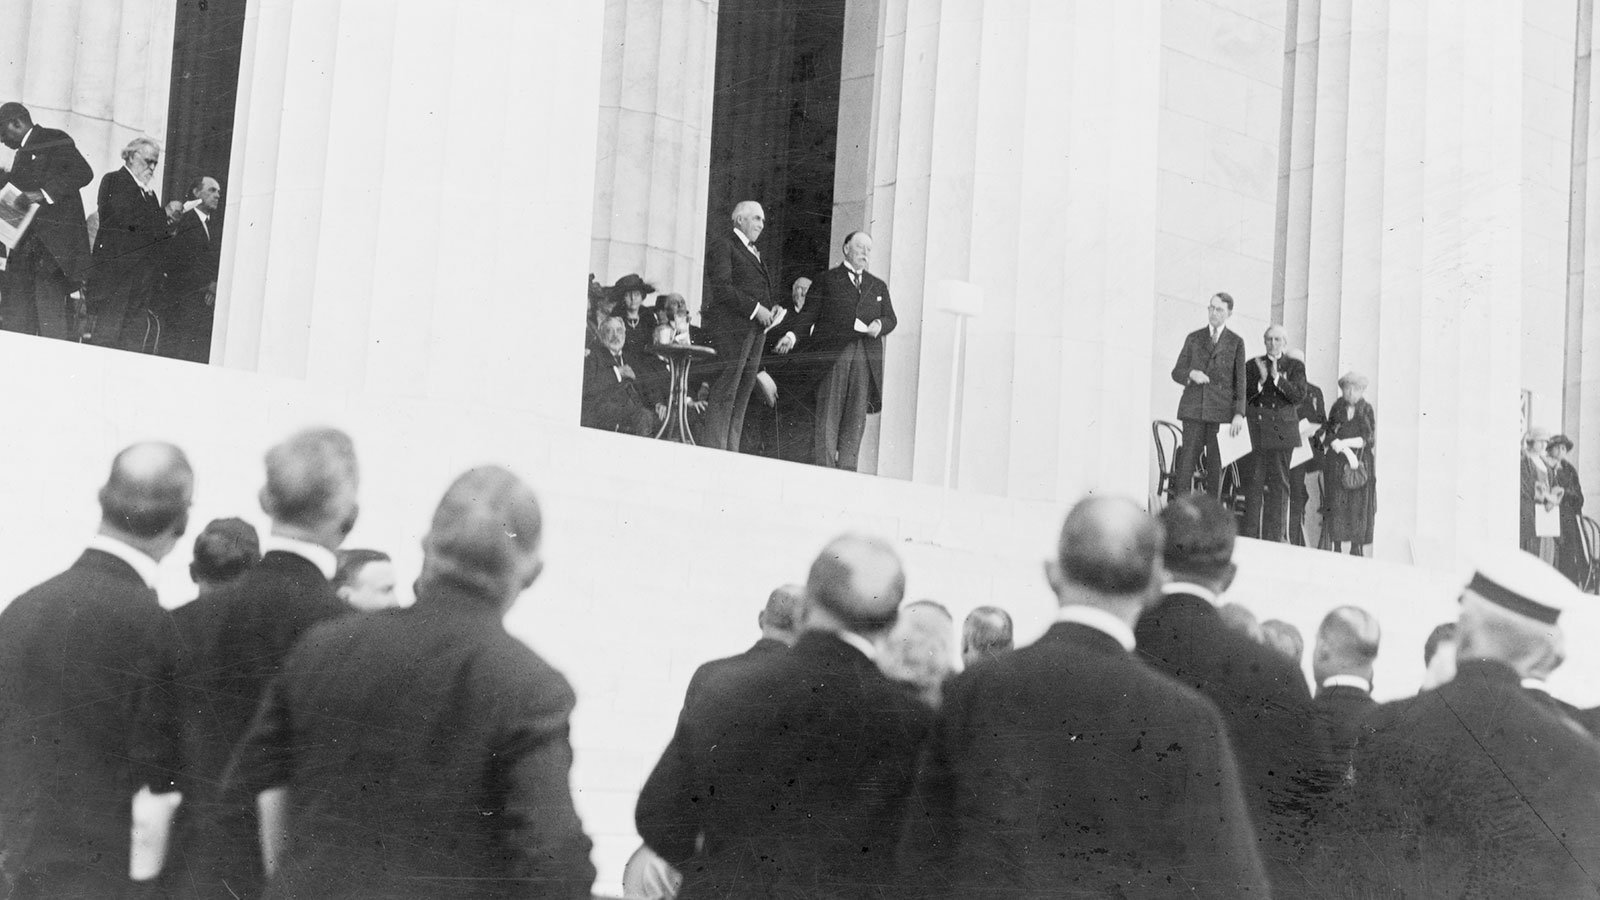 Chief Justice William H. Taft turning over the memorial and President Warren G. Harding receiving it on behalf of the United States